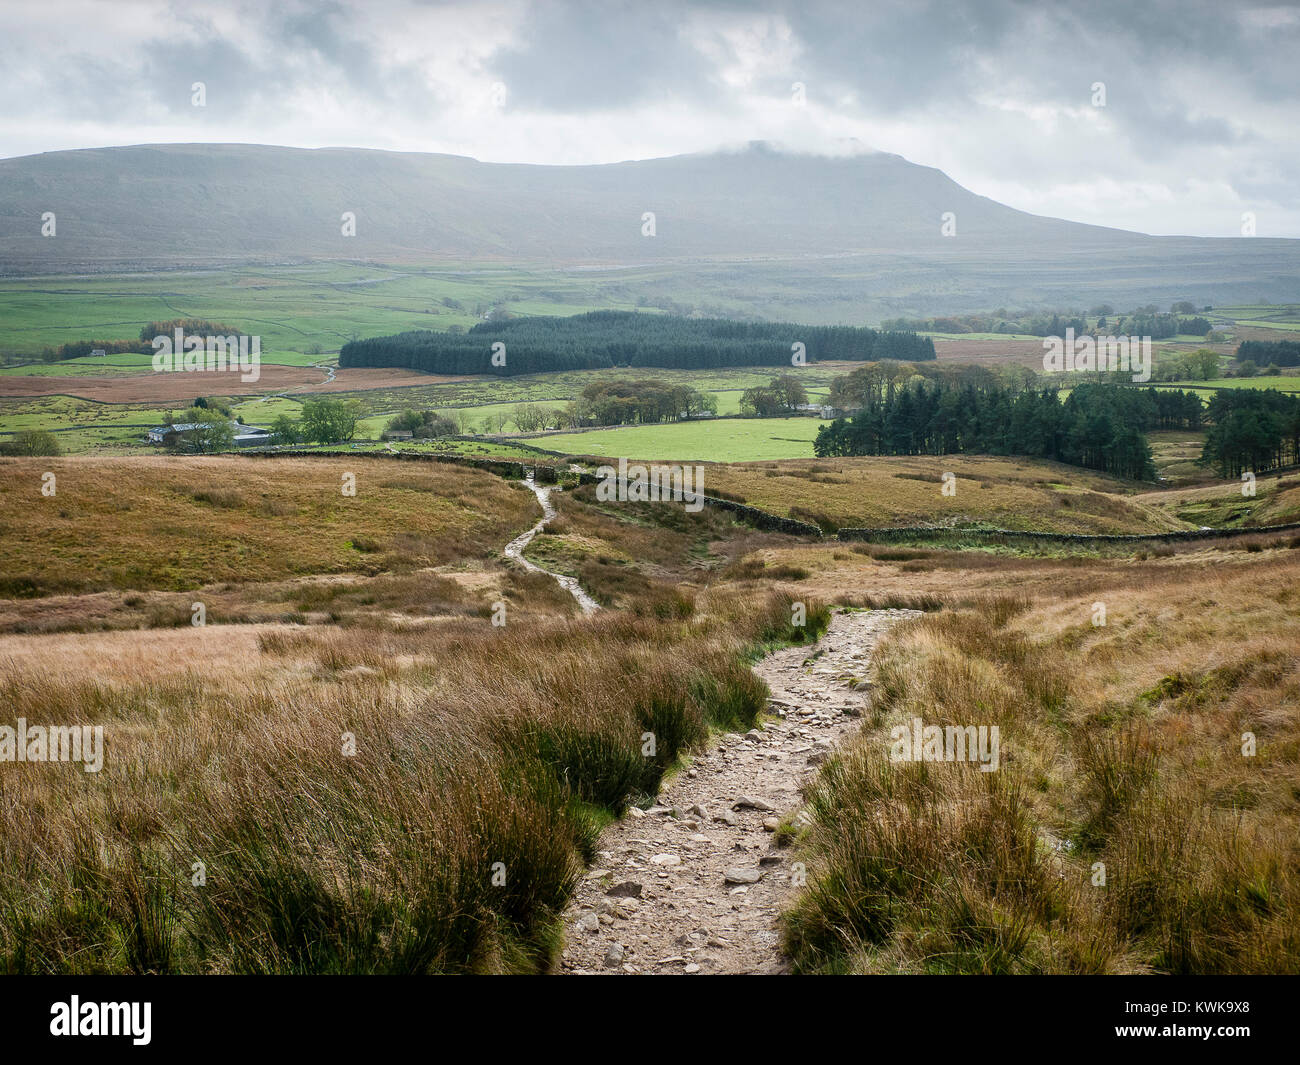 Path up to Whernside, with view to Ingleborough, 3 peaks, Yorkshire Dales, England, UK - Stock Image